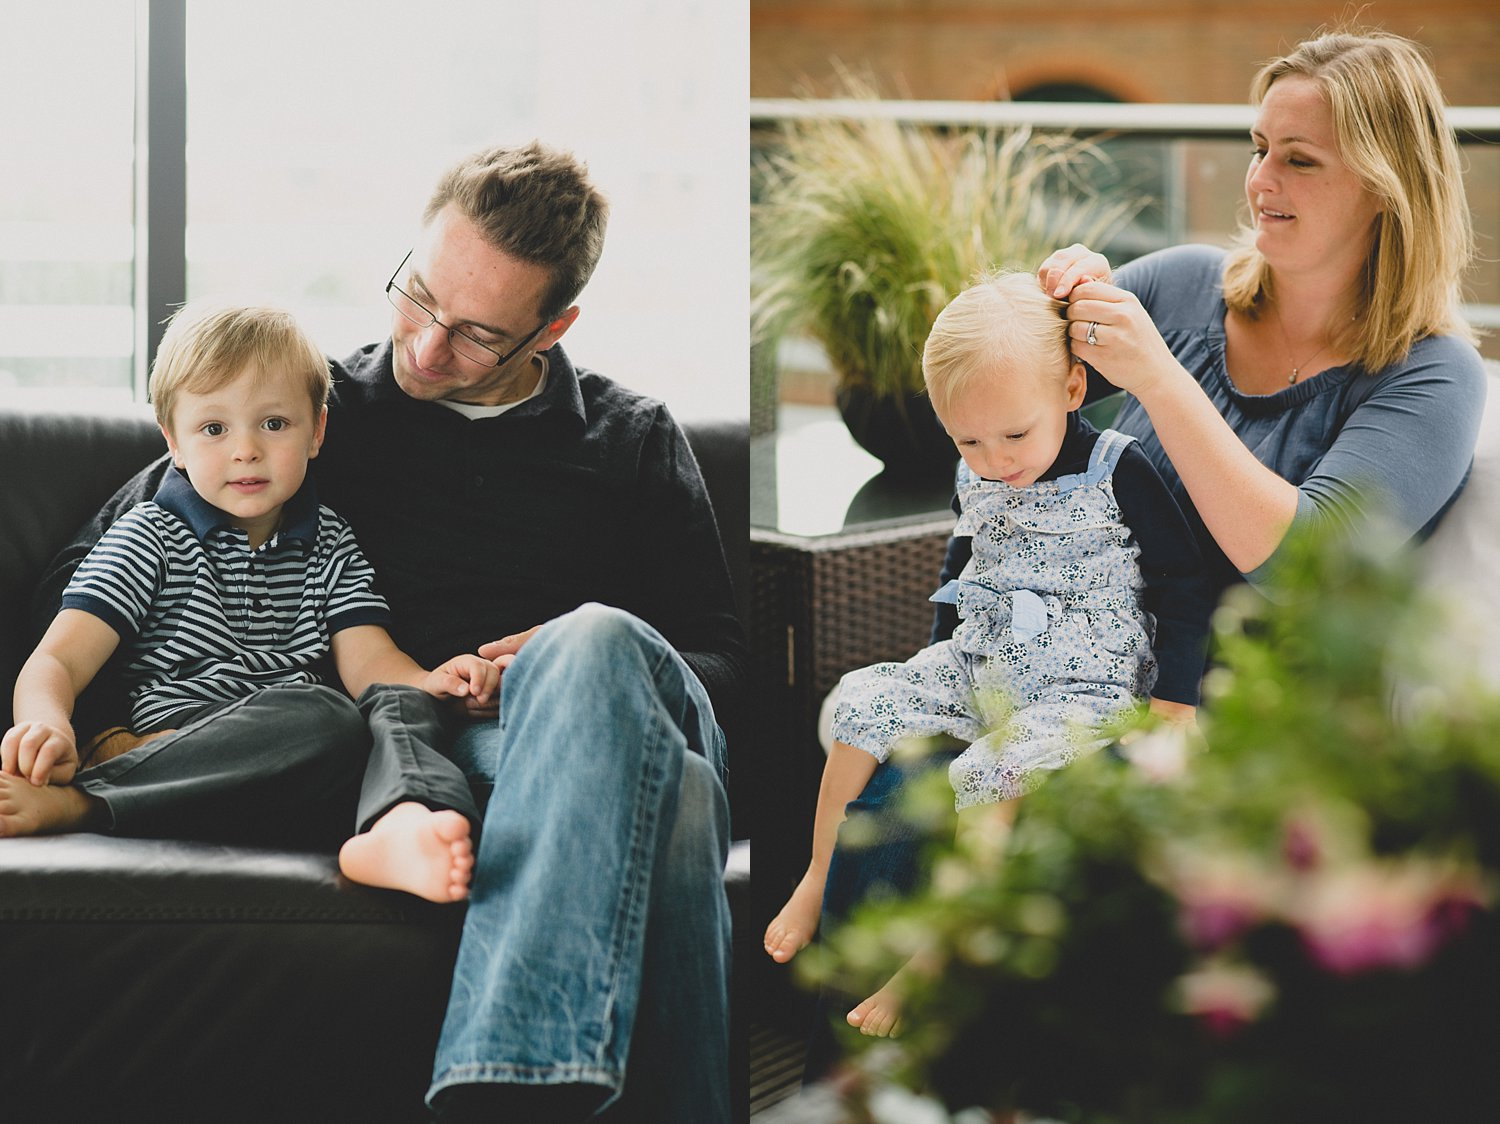 5 Tips for Doing Lifestyle Photo Sessions - parents and kids